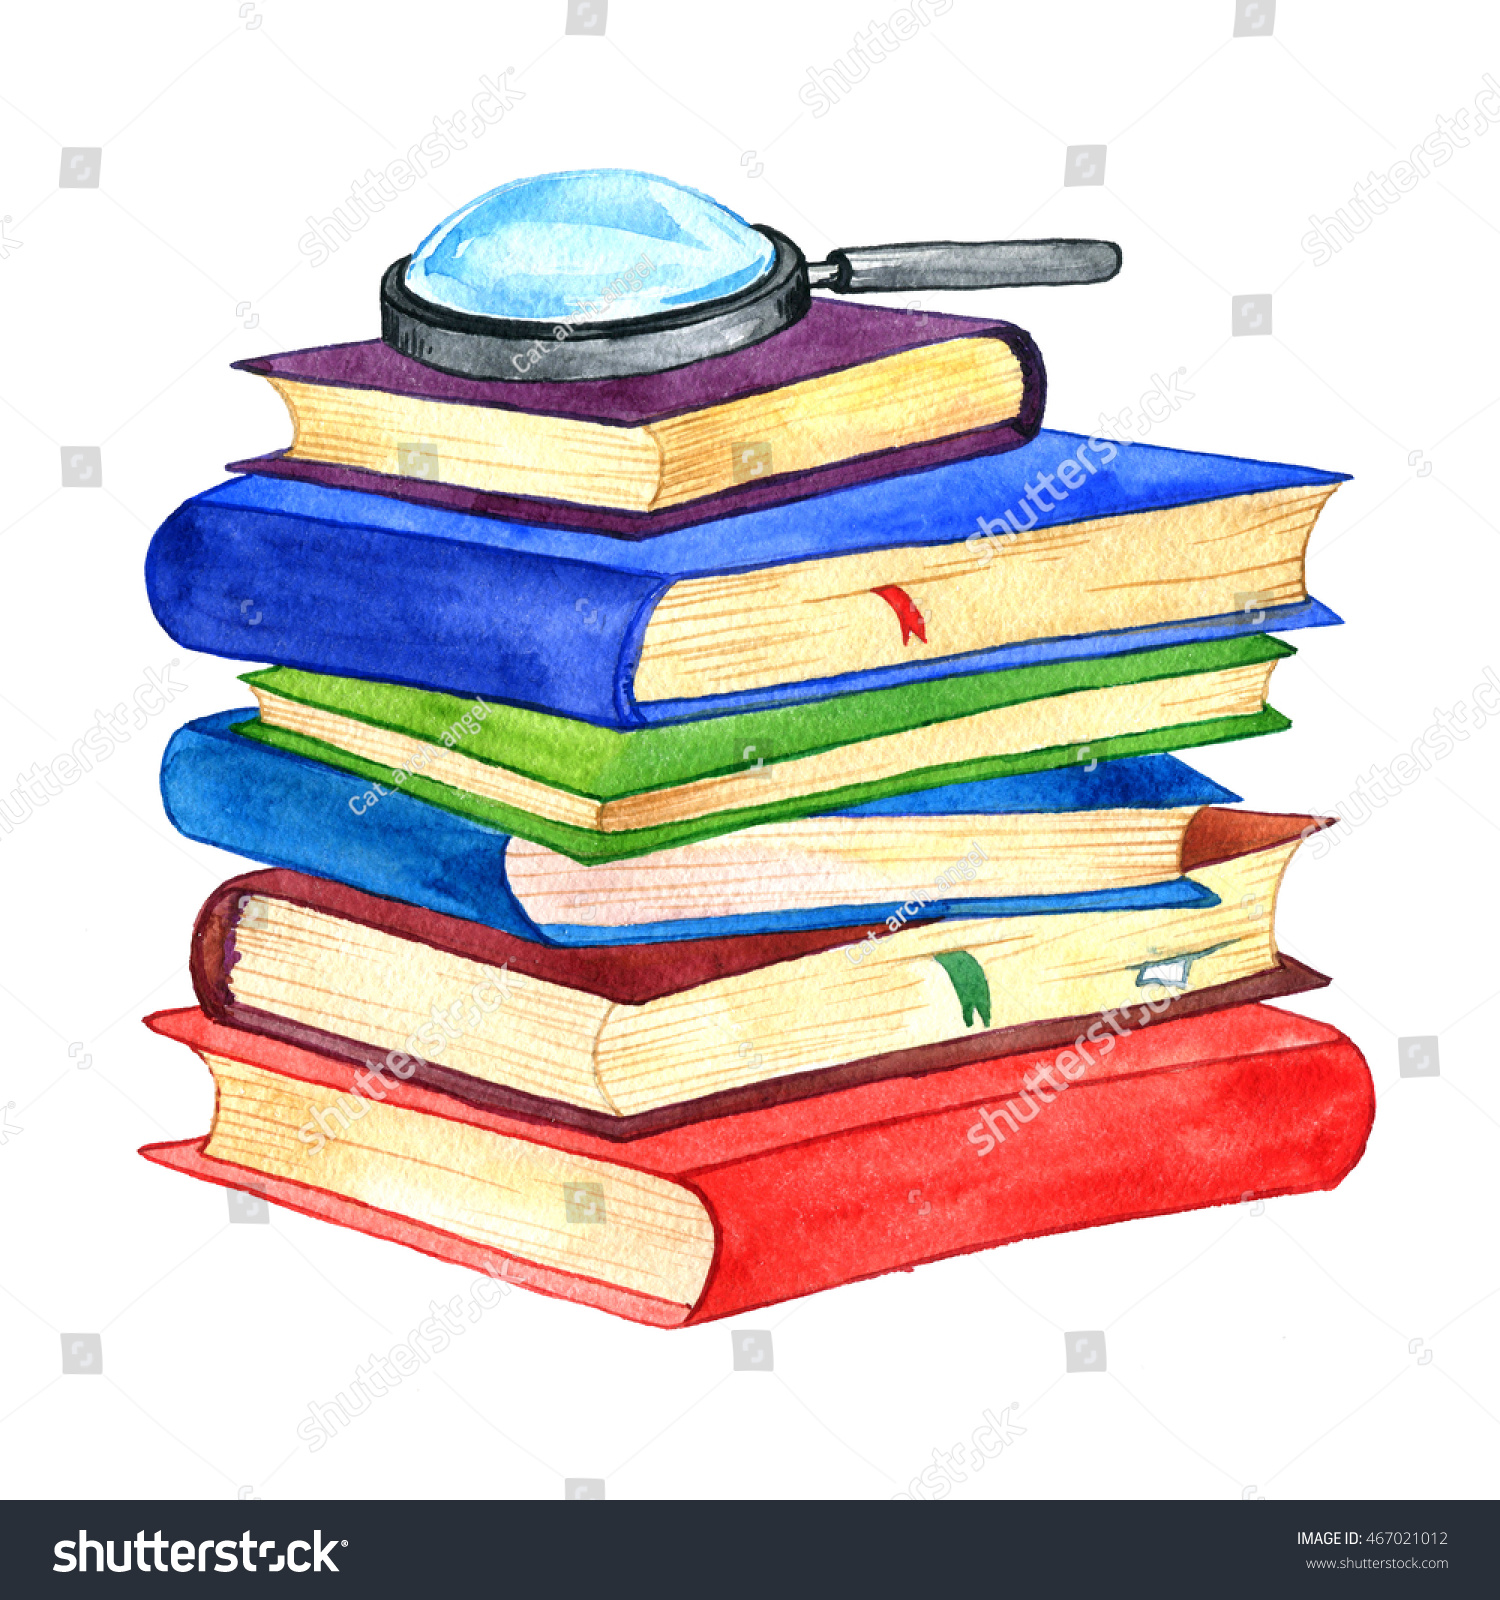 Watercolor Stack Books Magnifying Glass Isolated Stock